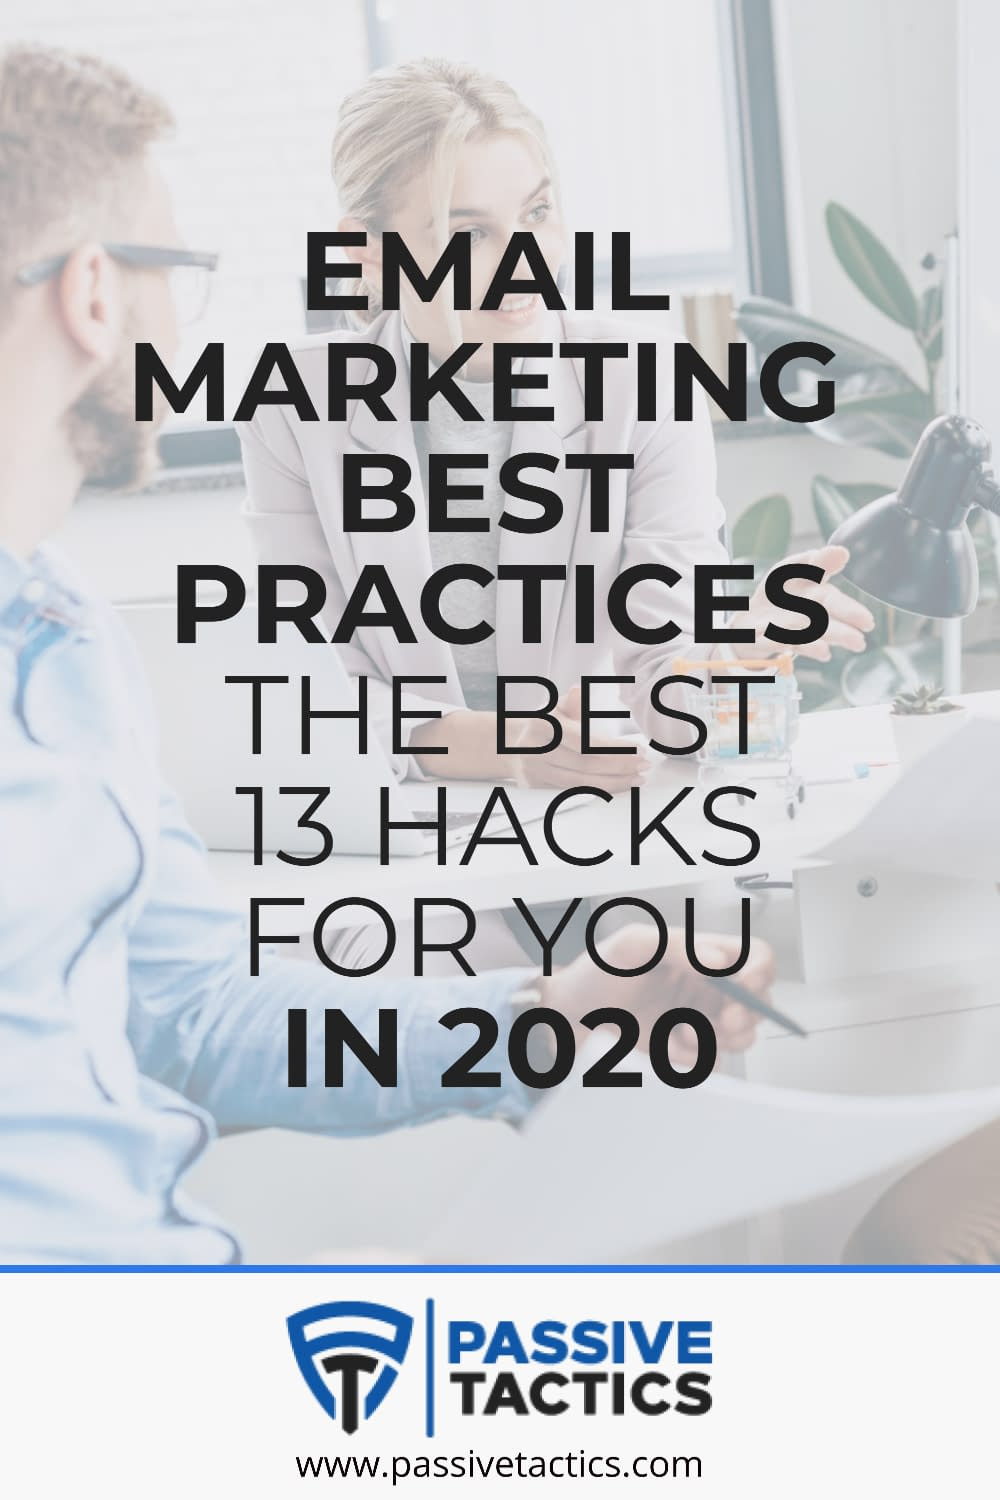 Best Email Marketing Practices: The Best 13 Hacks For You In 2020